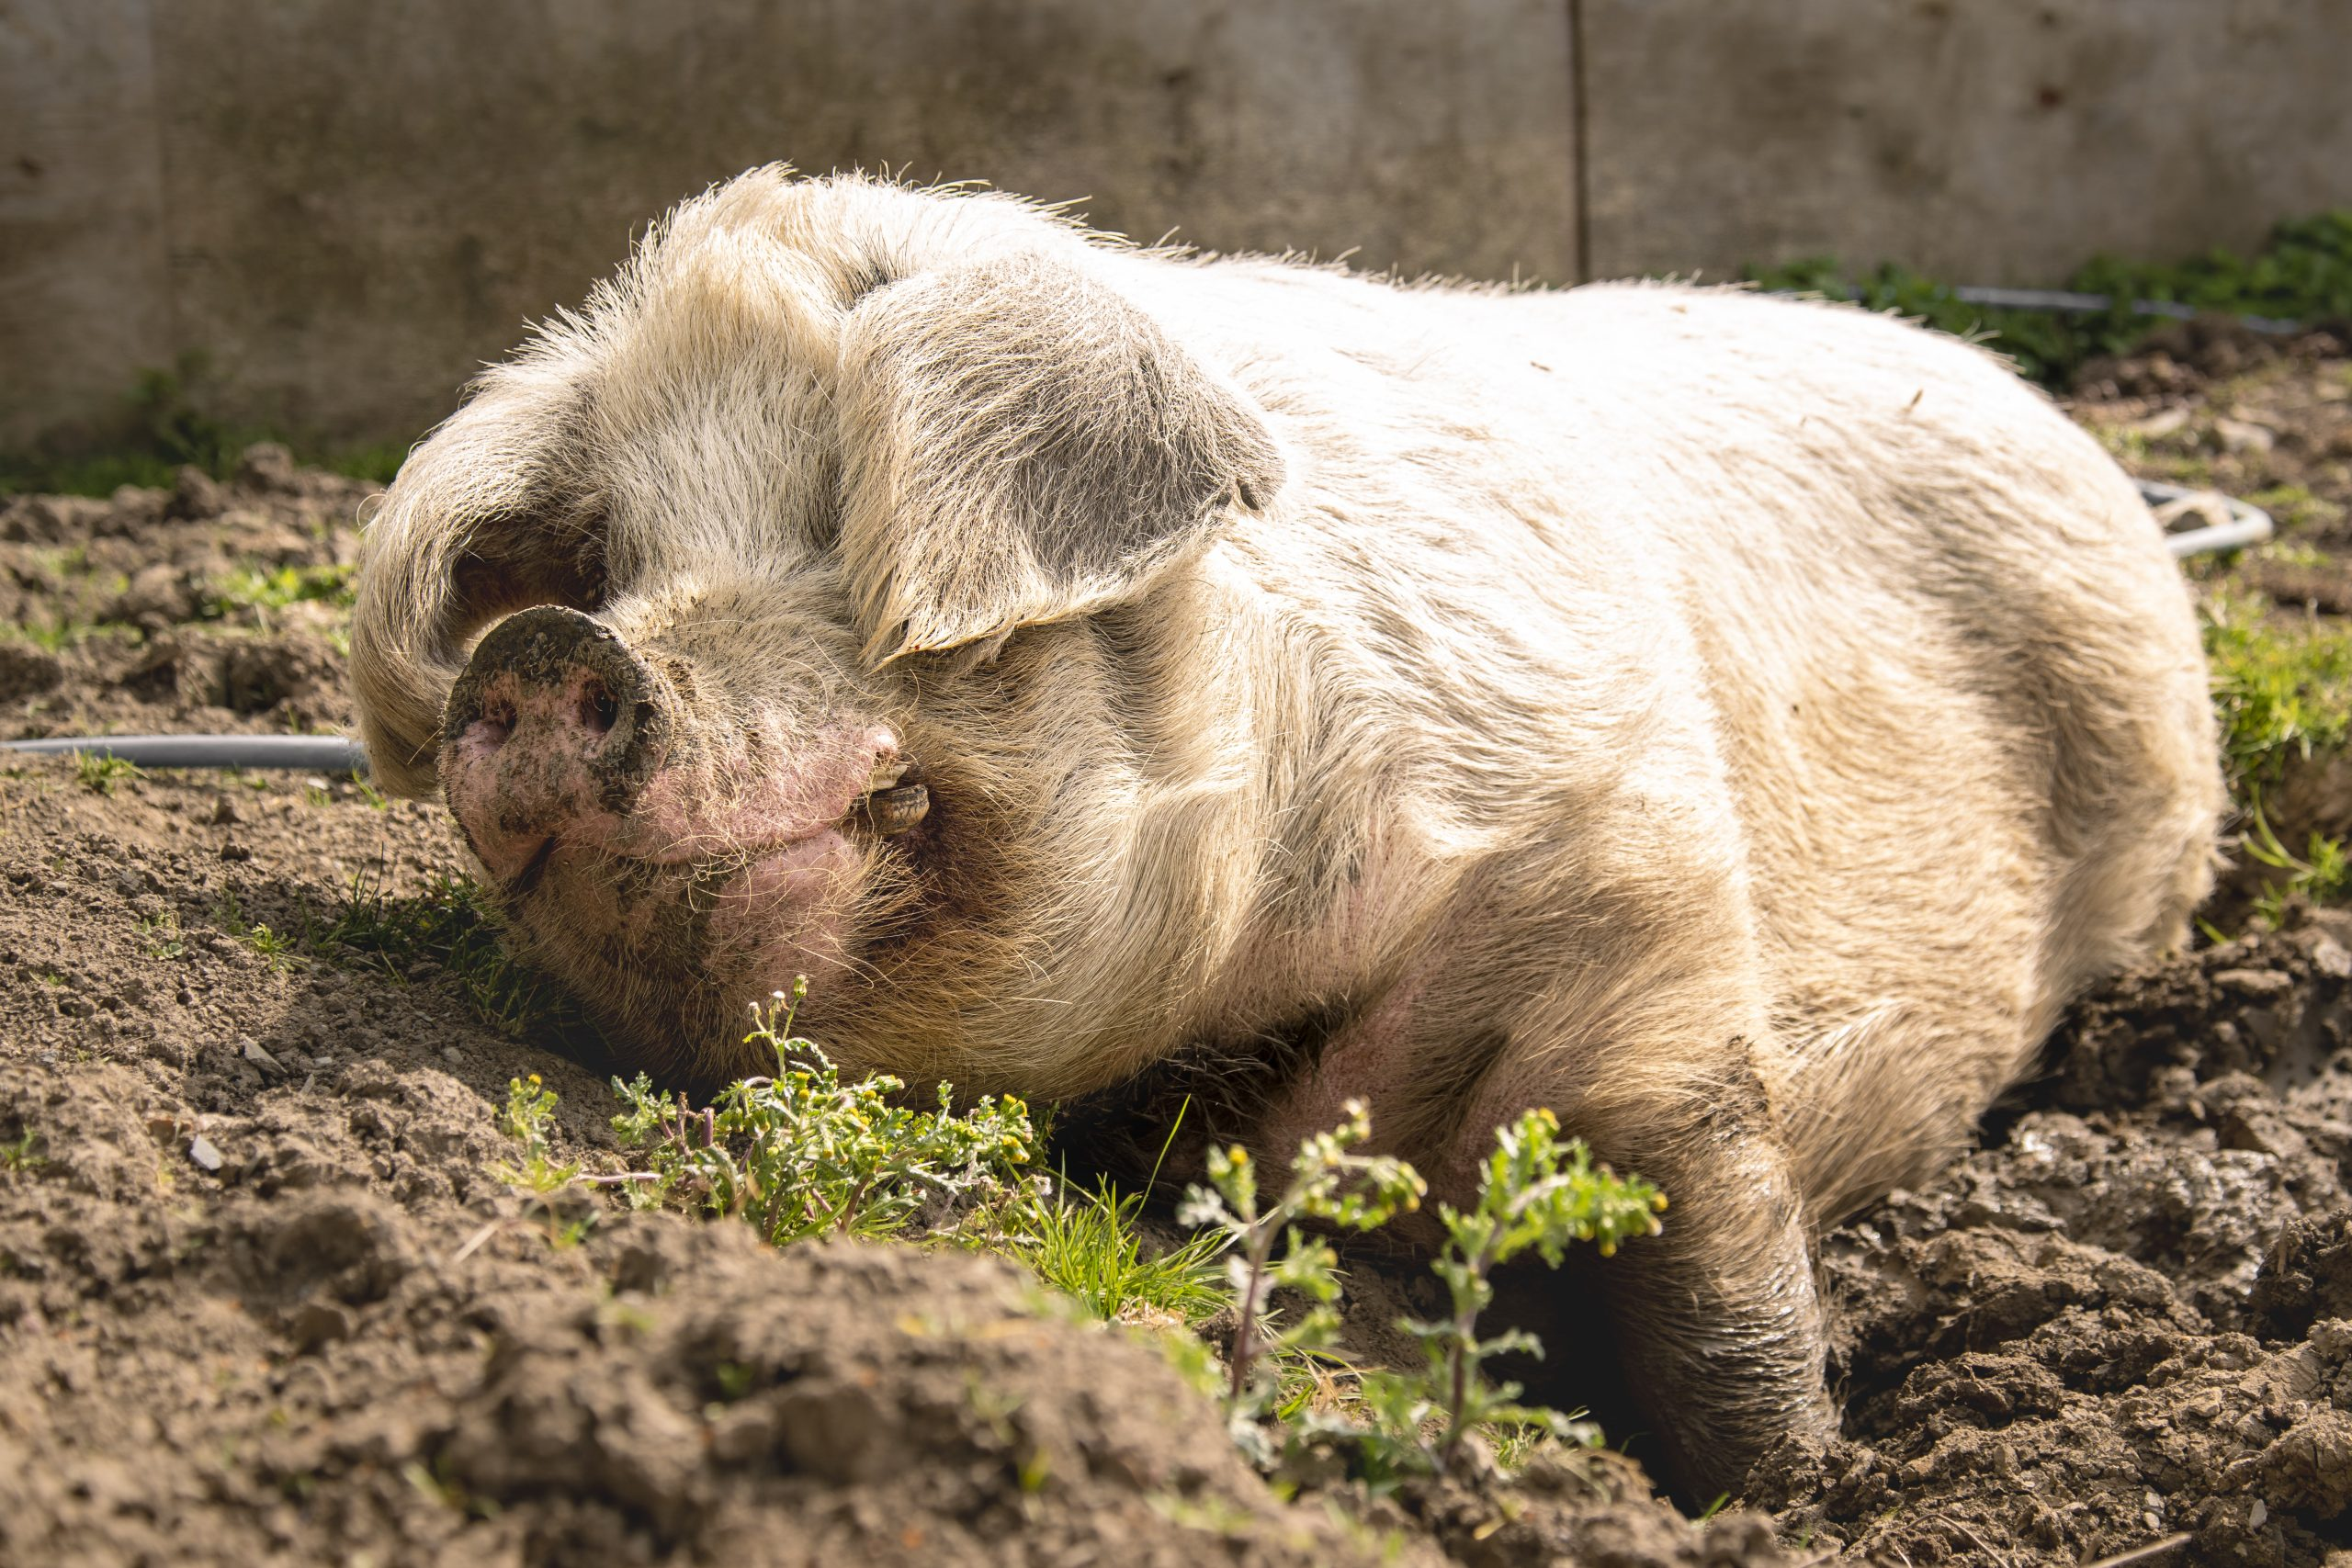 Farm Animal Sanctuary Risks Losing Its Land- It's Up To Us To Help 1